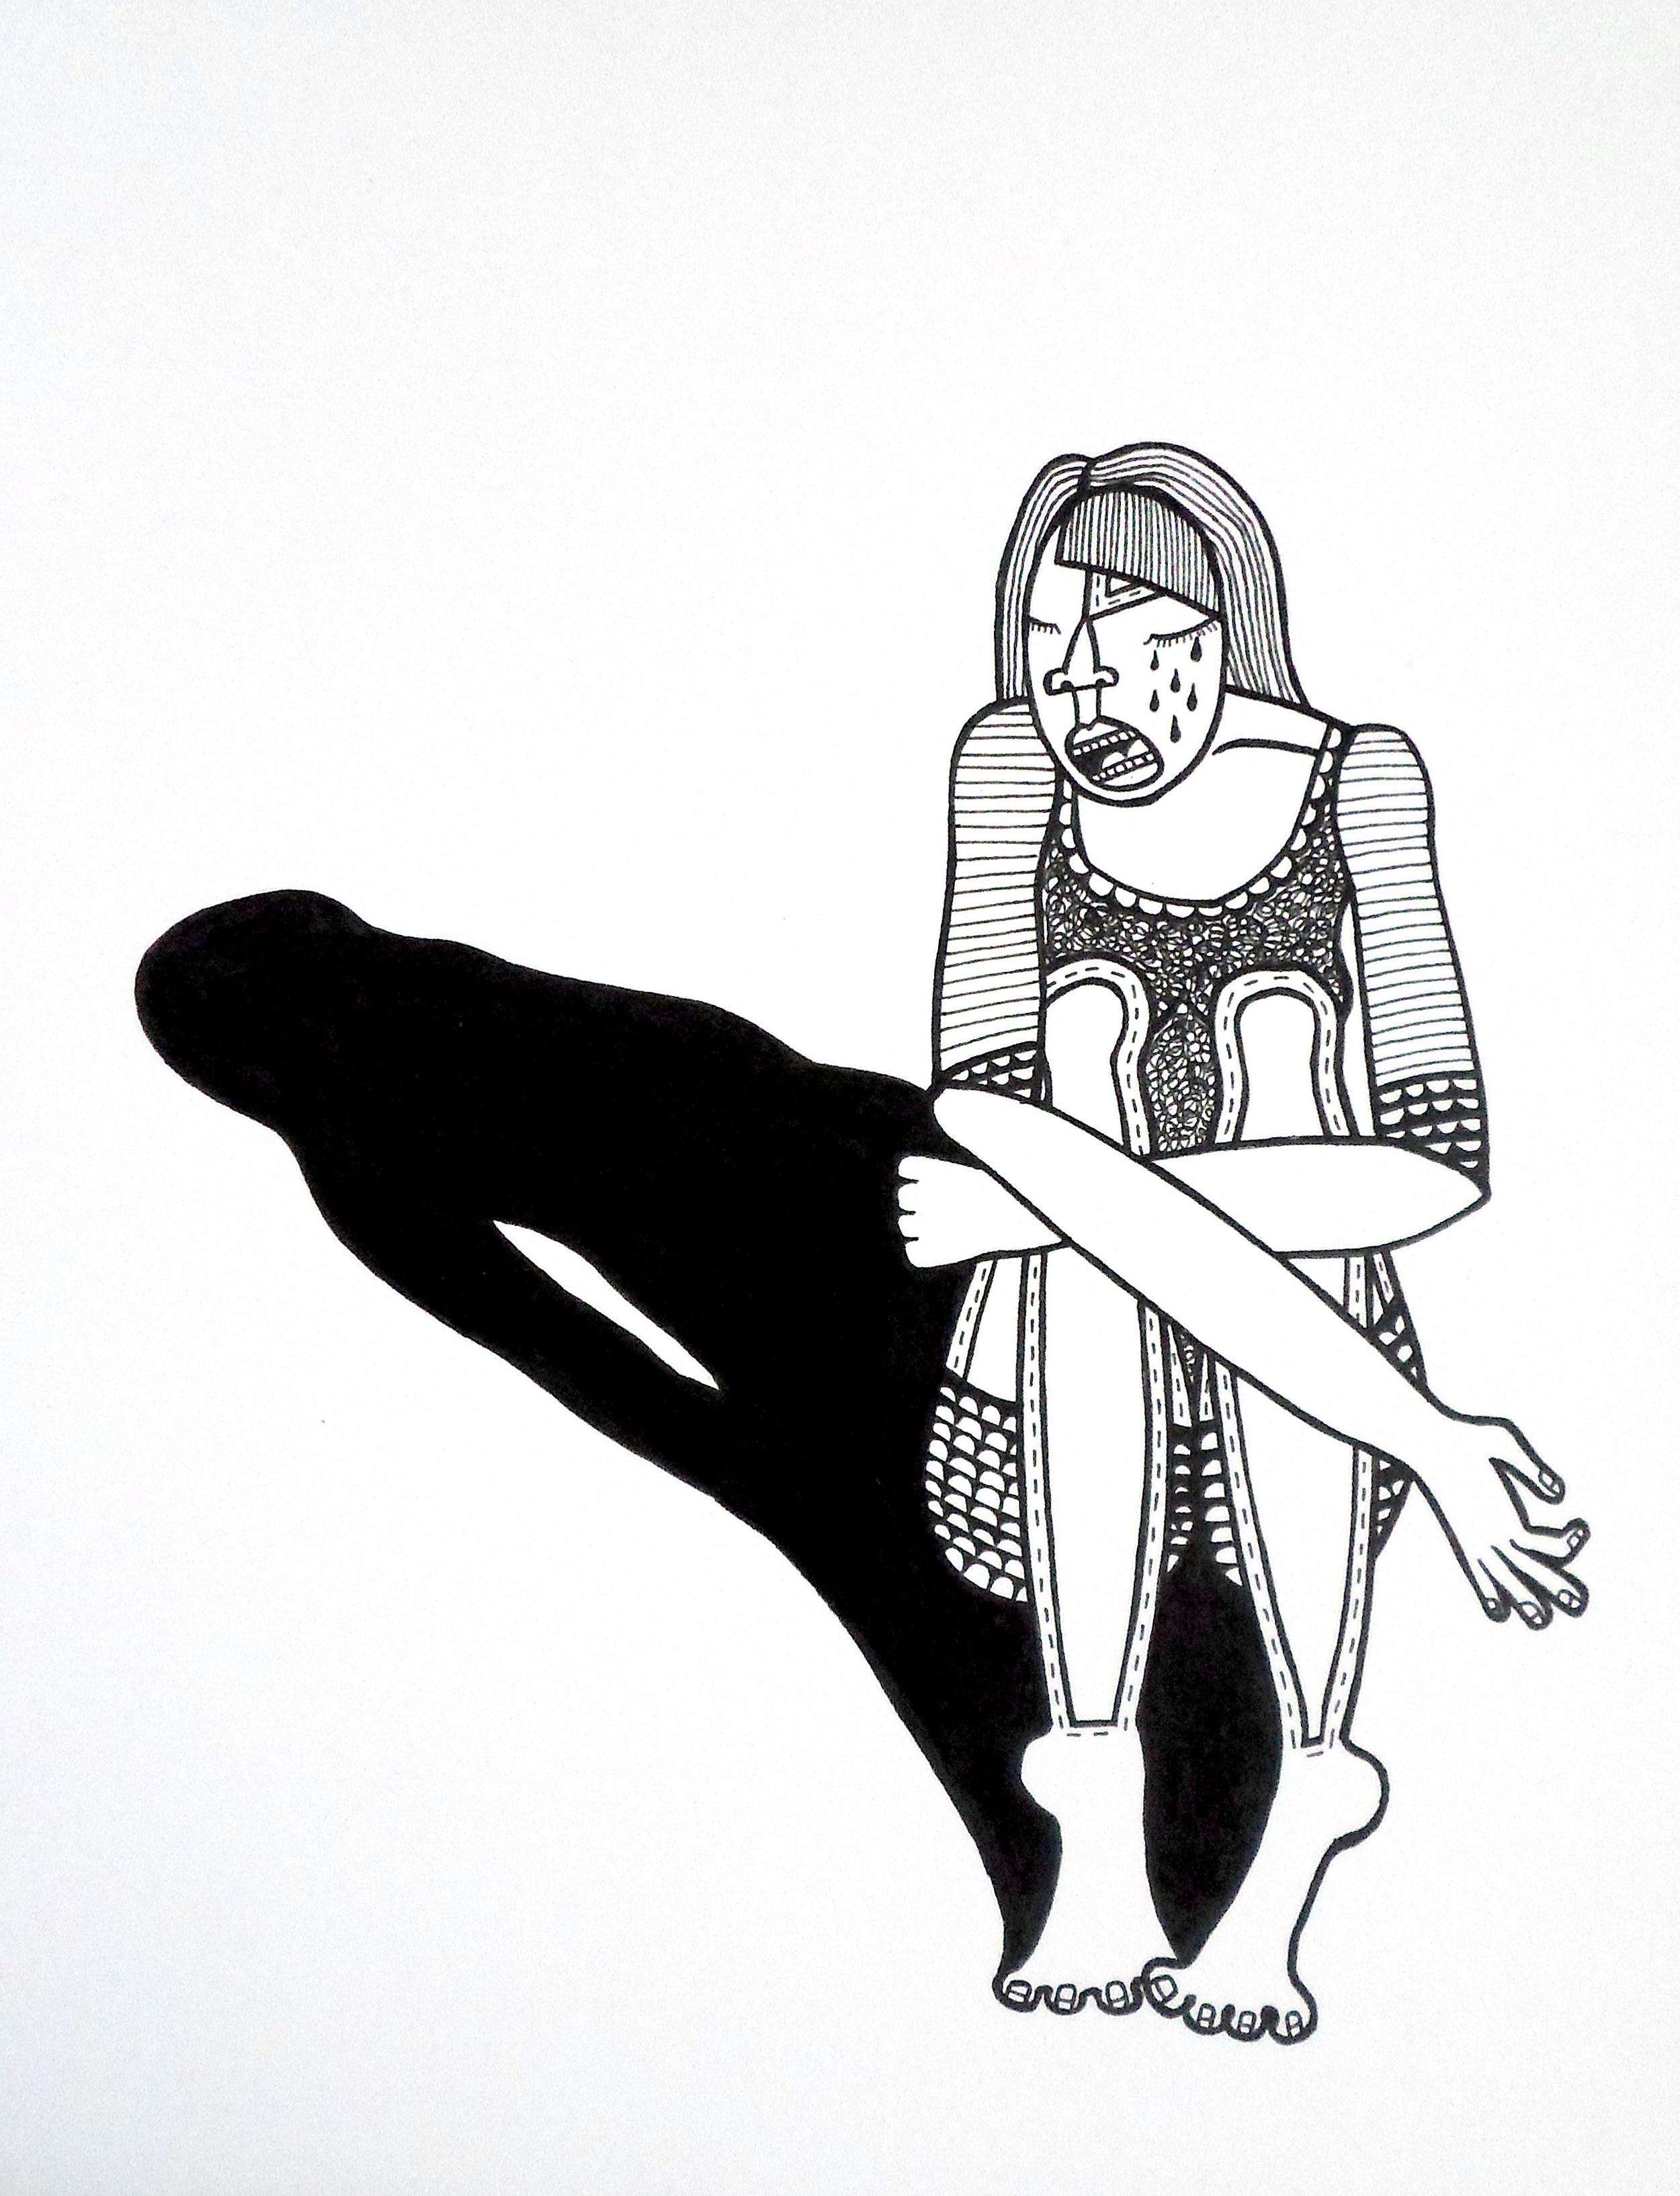 Sad Girl, ink on paper, 8 x 10 inches, 2015